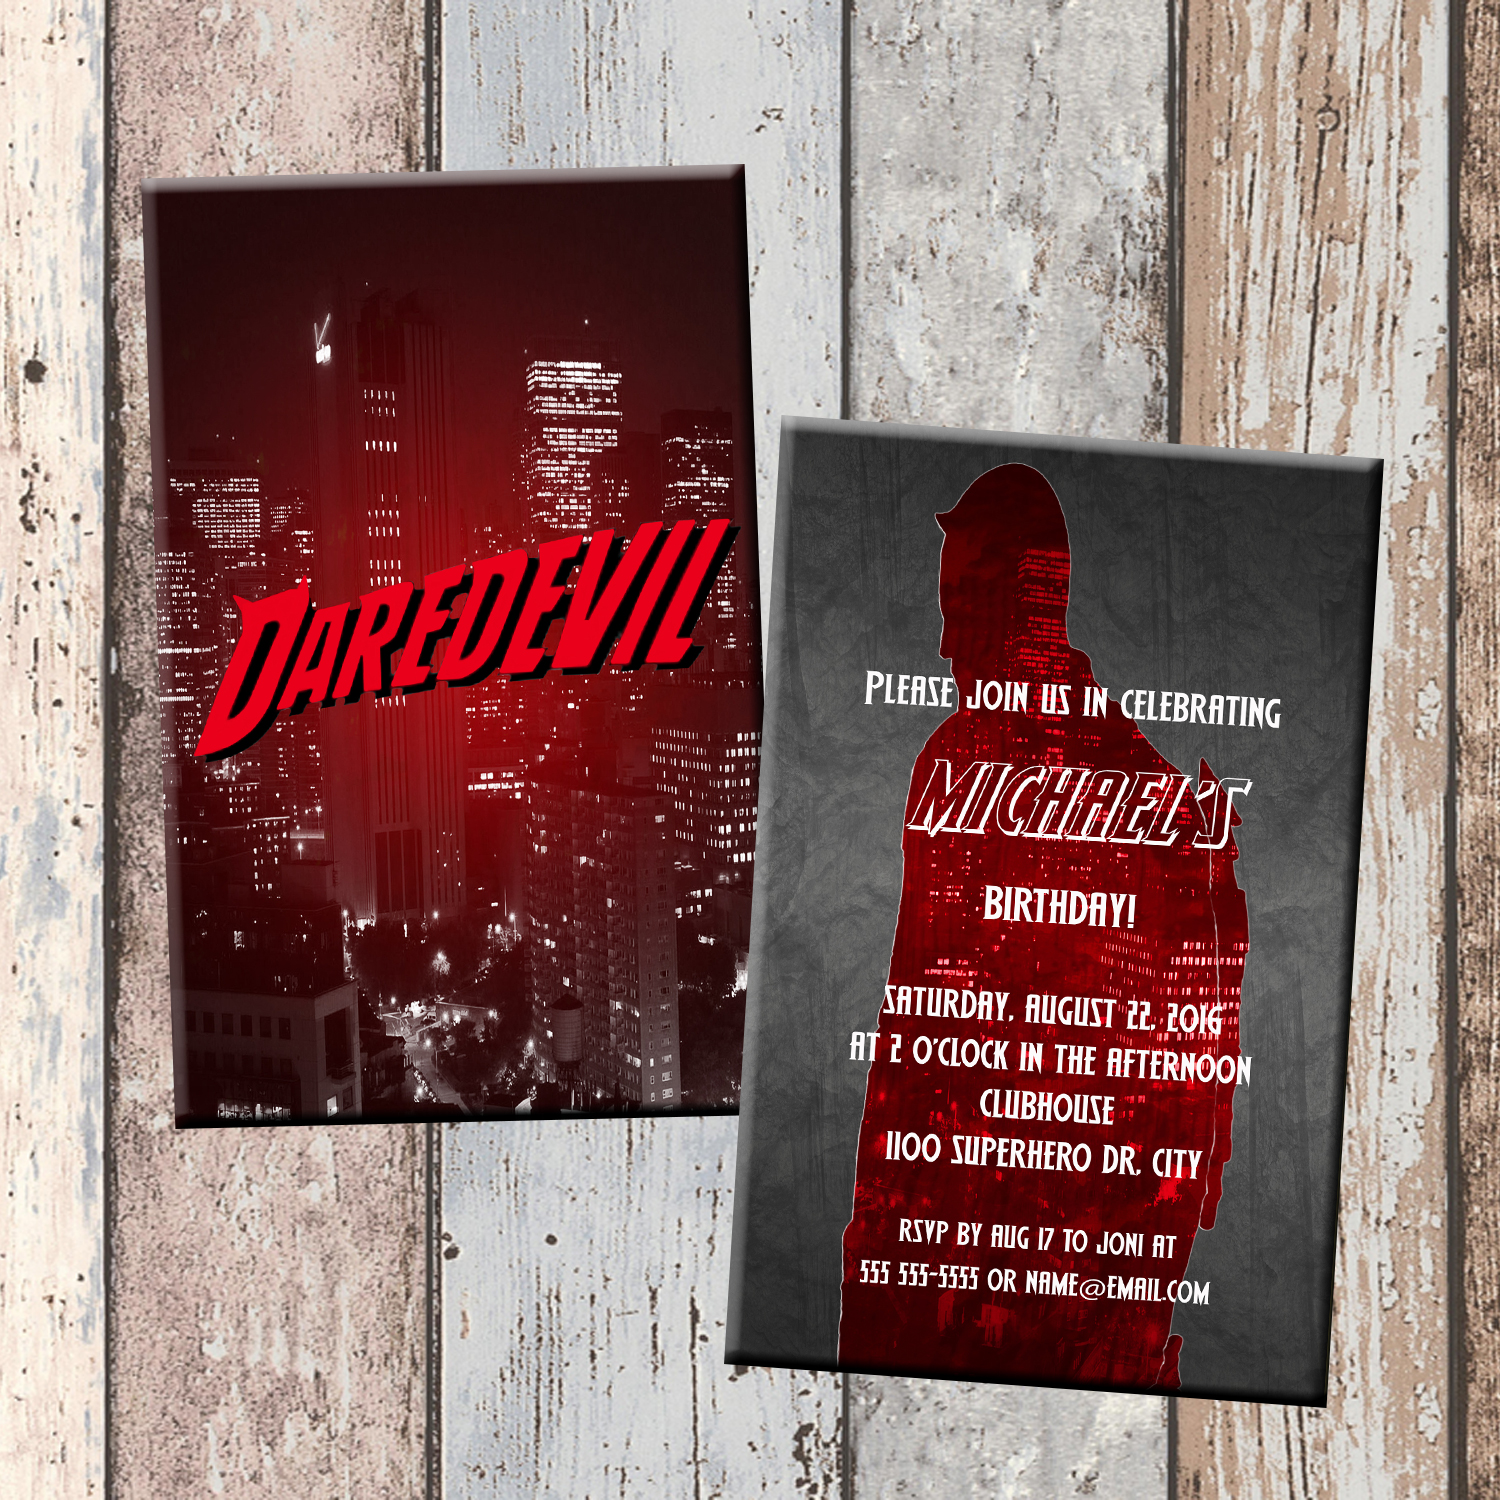 Daredevil Superhero Personalized Birthday Invitation 2 Sided Card Party